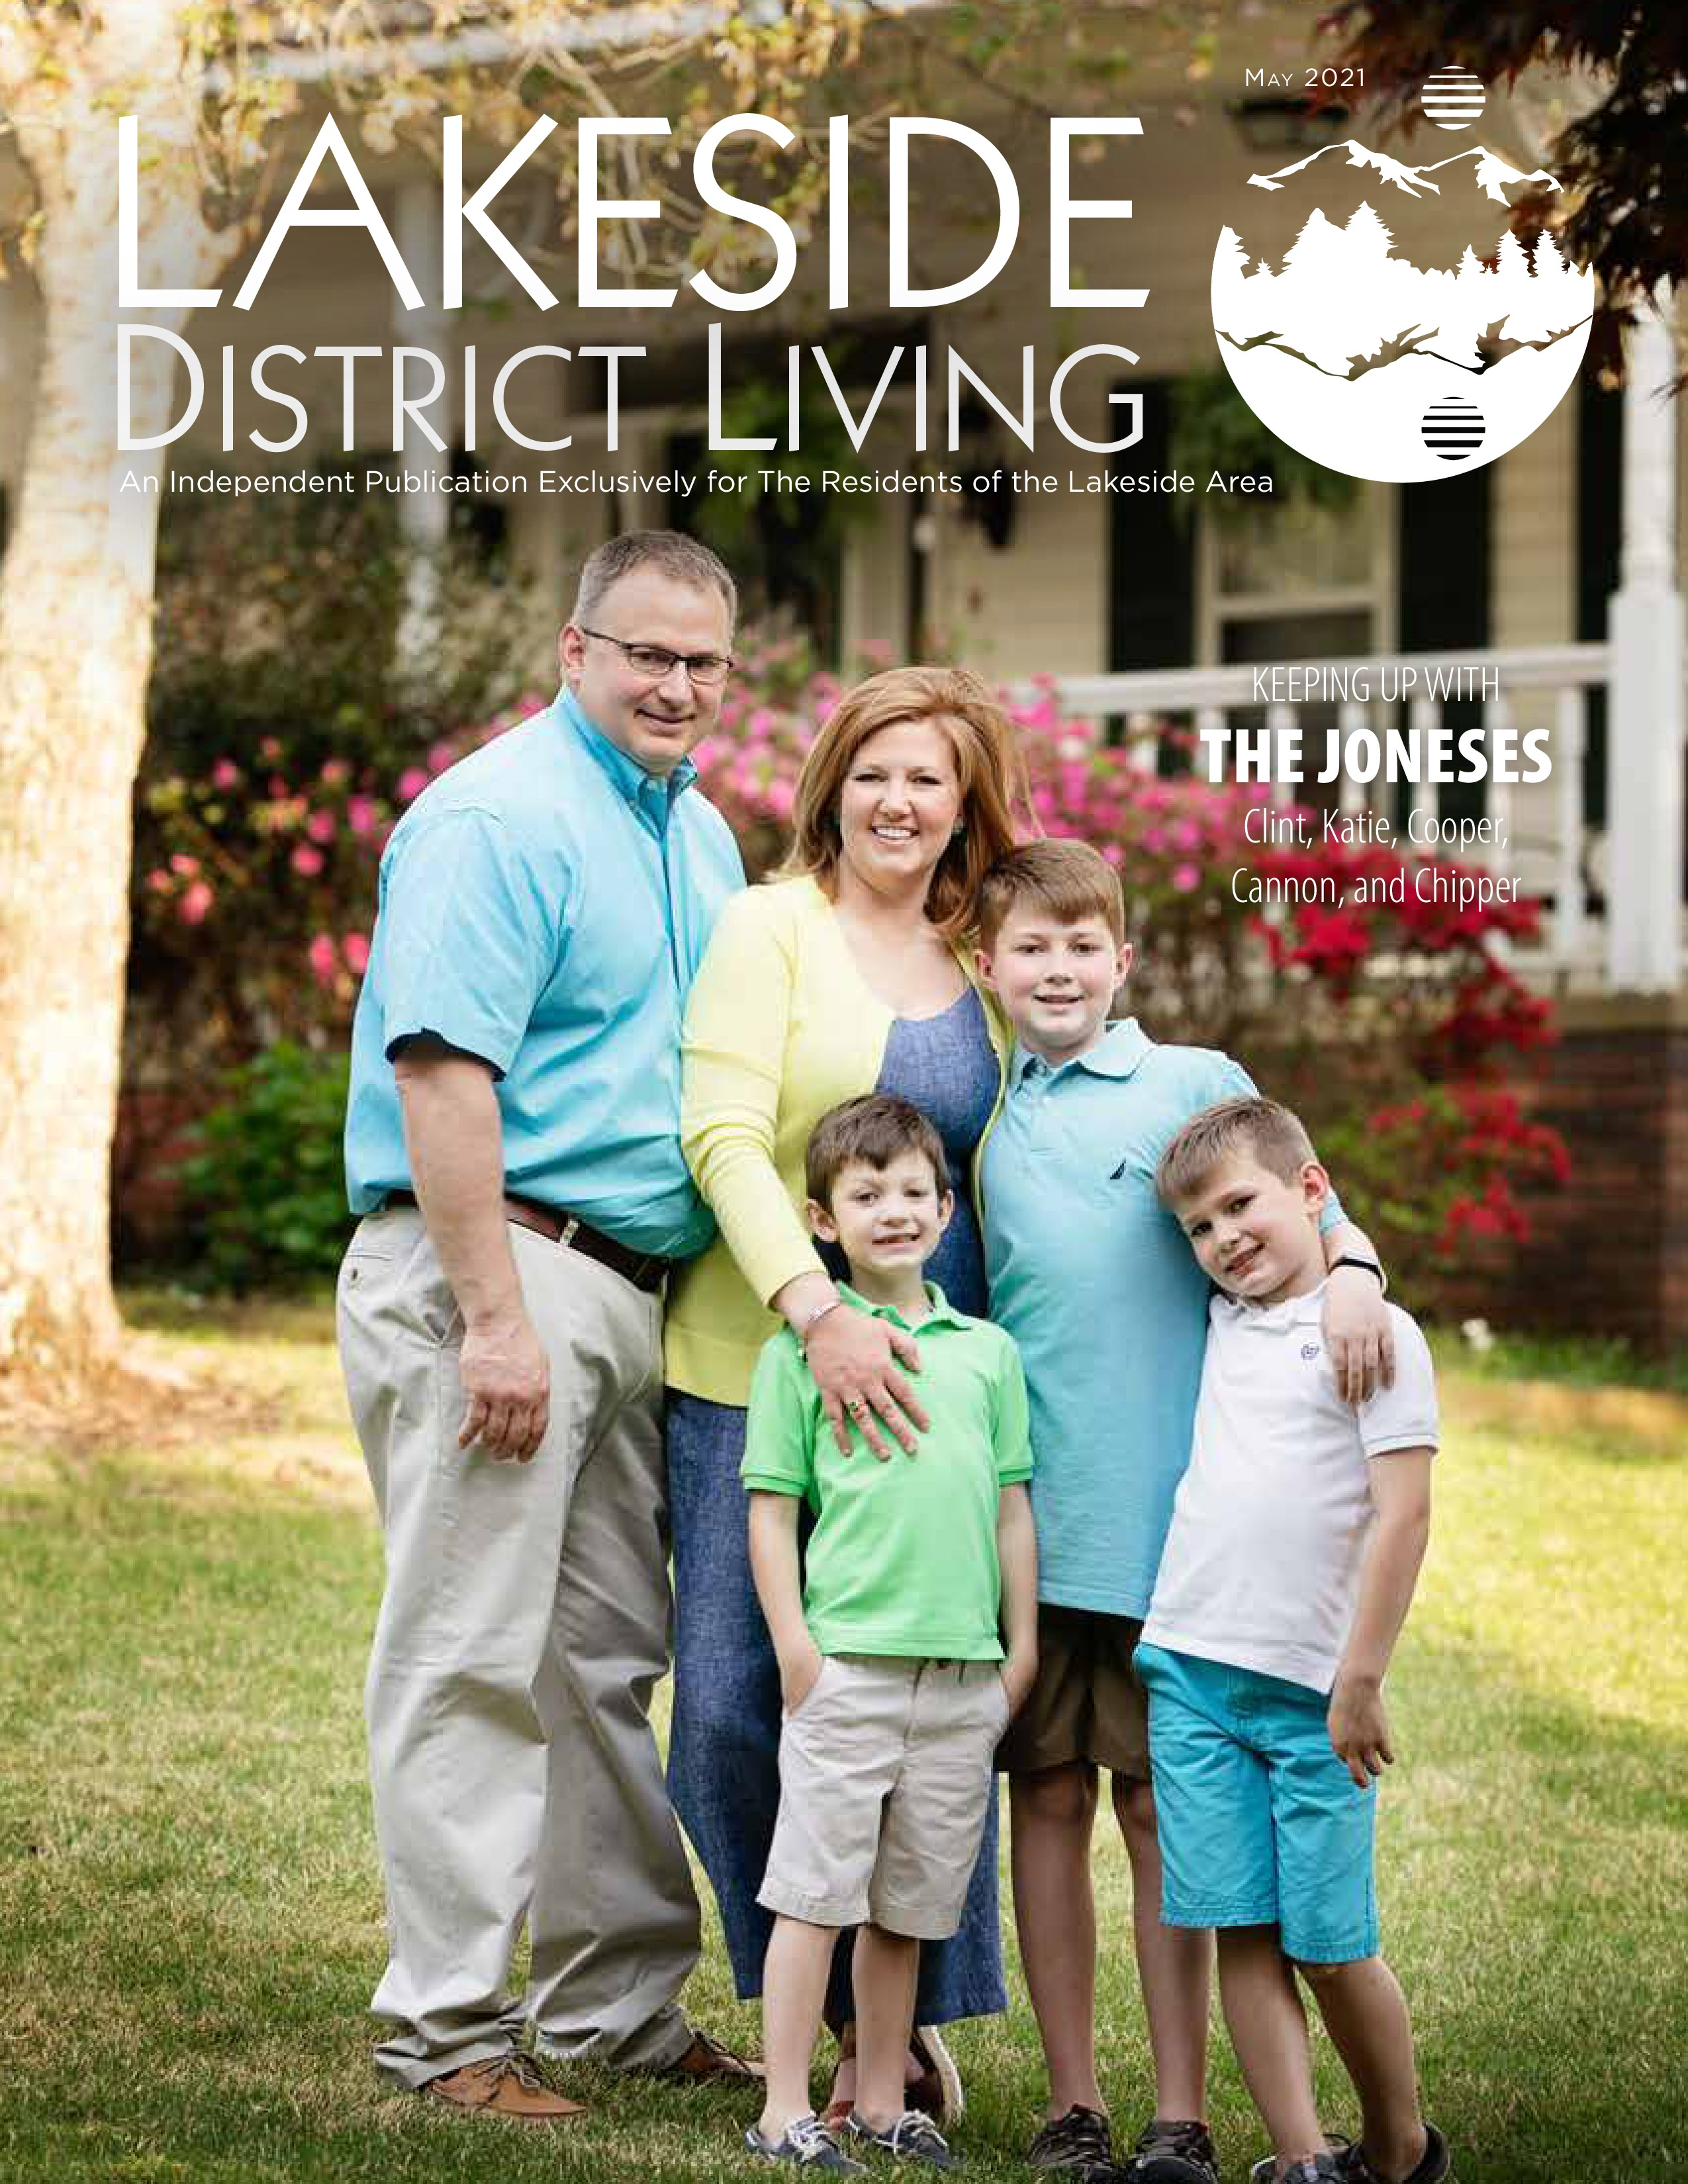 Lakeside District Living 2021-05-01